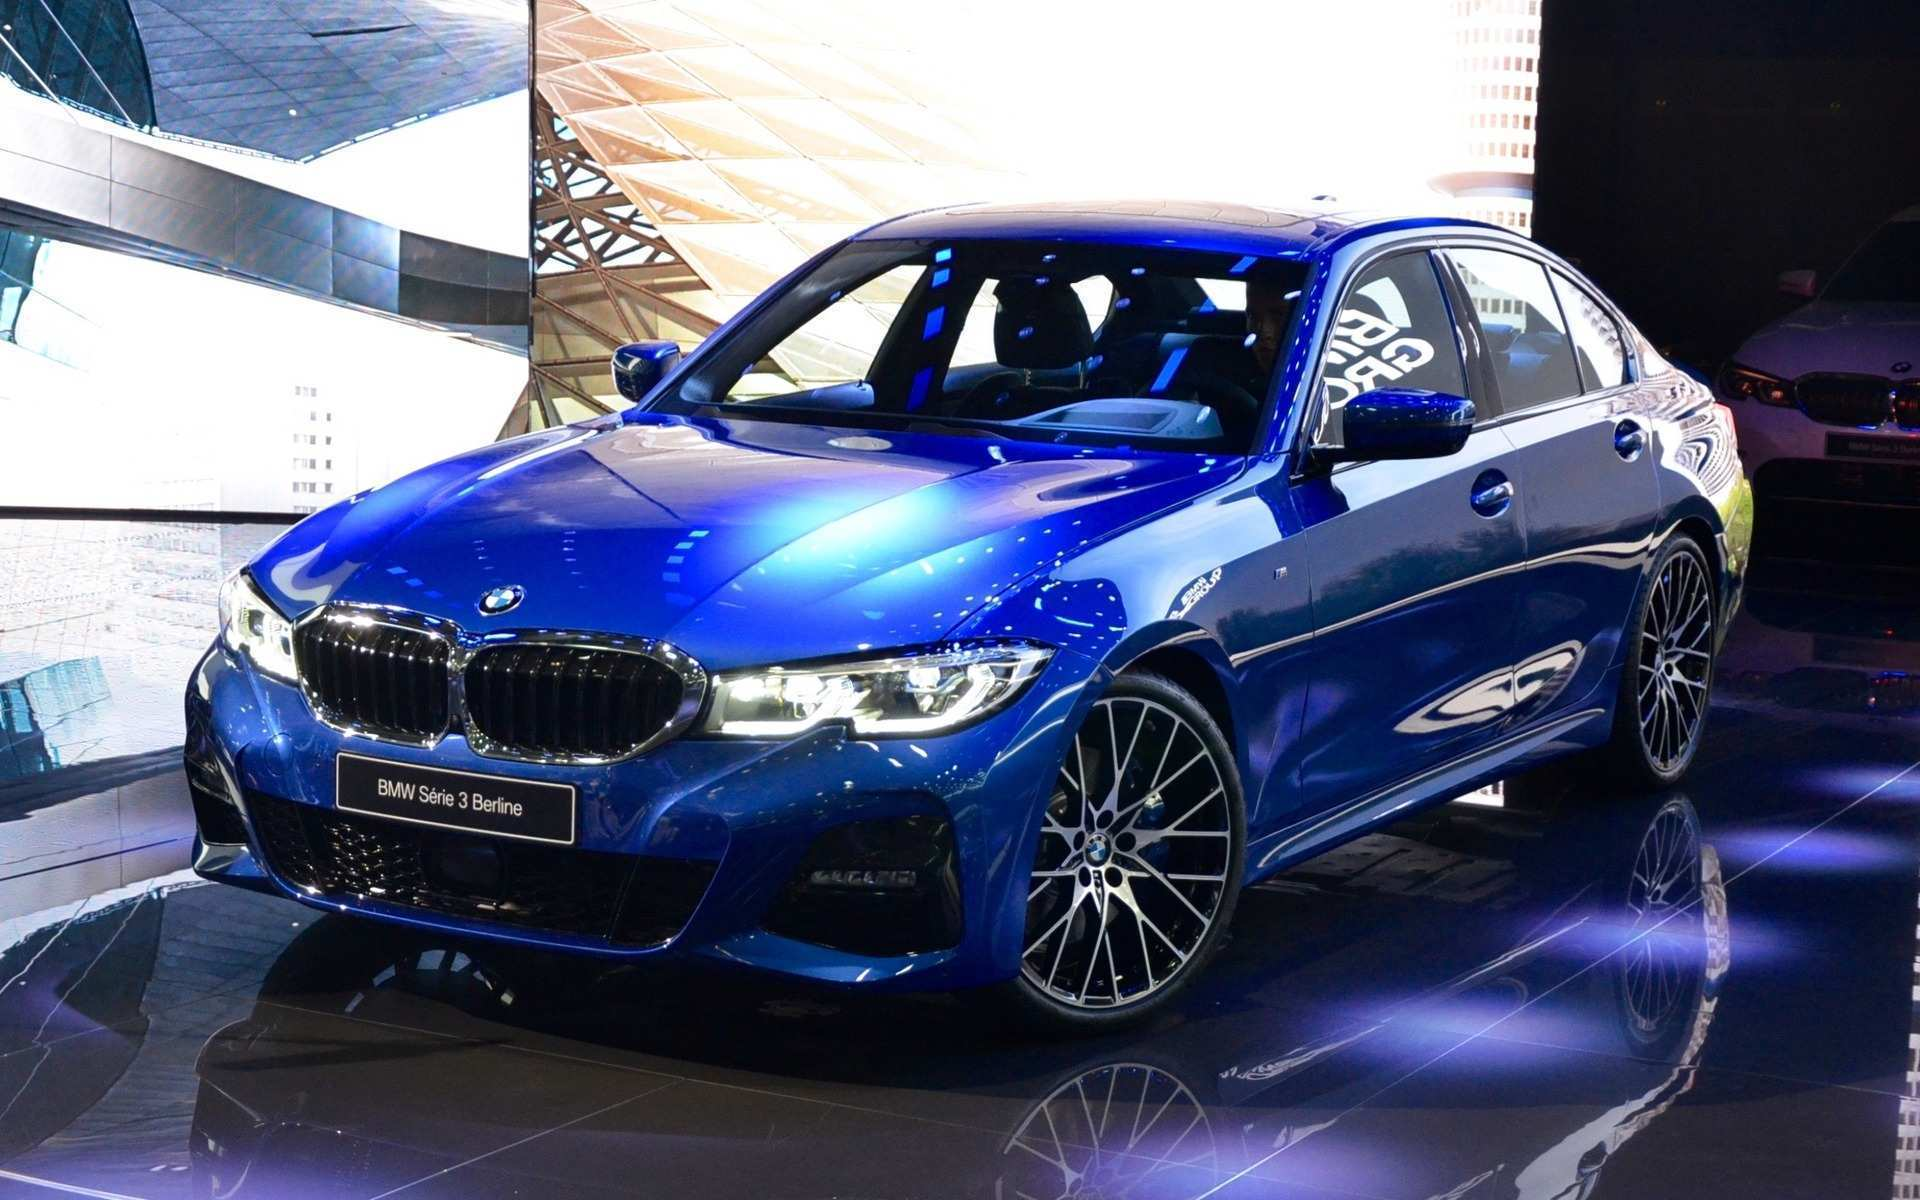 87 The Best 2019 BMW 3 Series Wallpaper